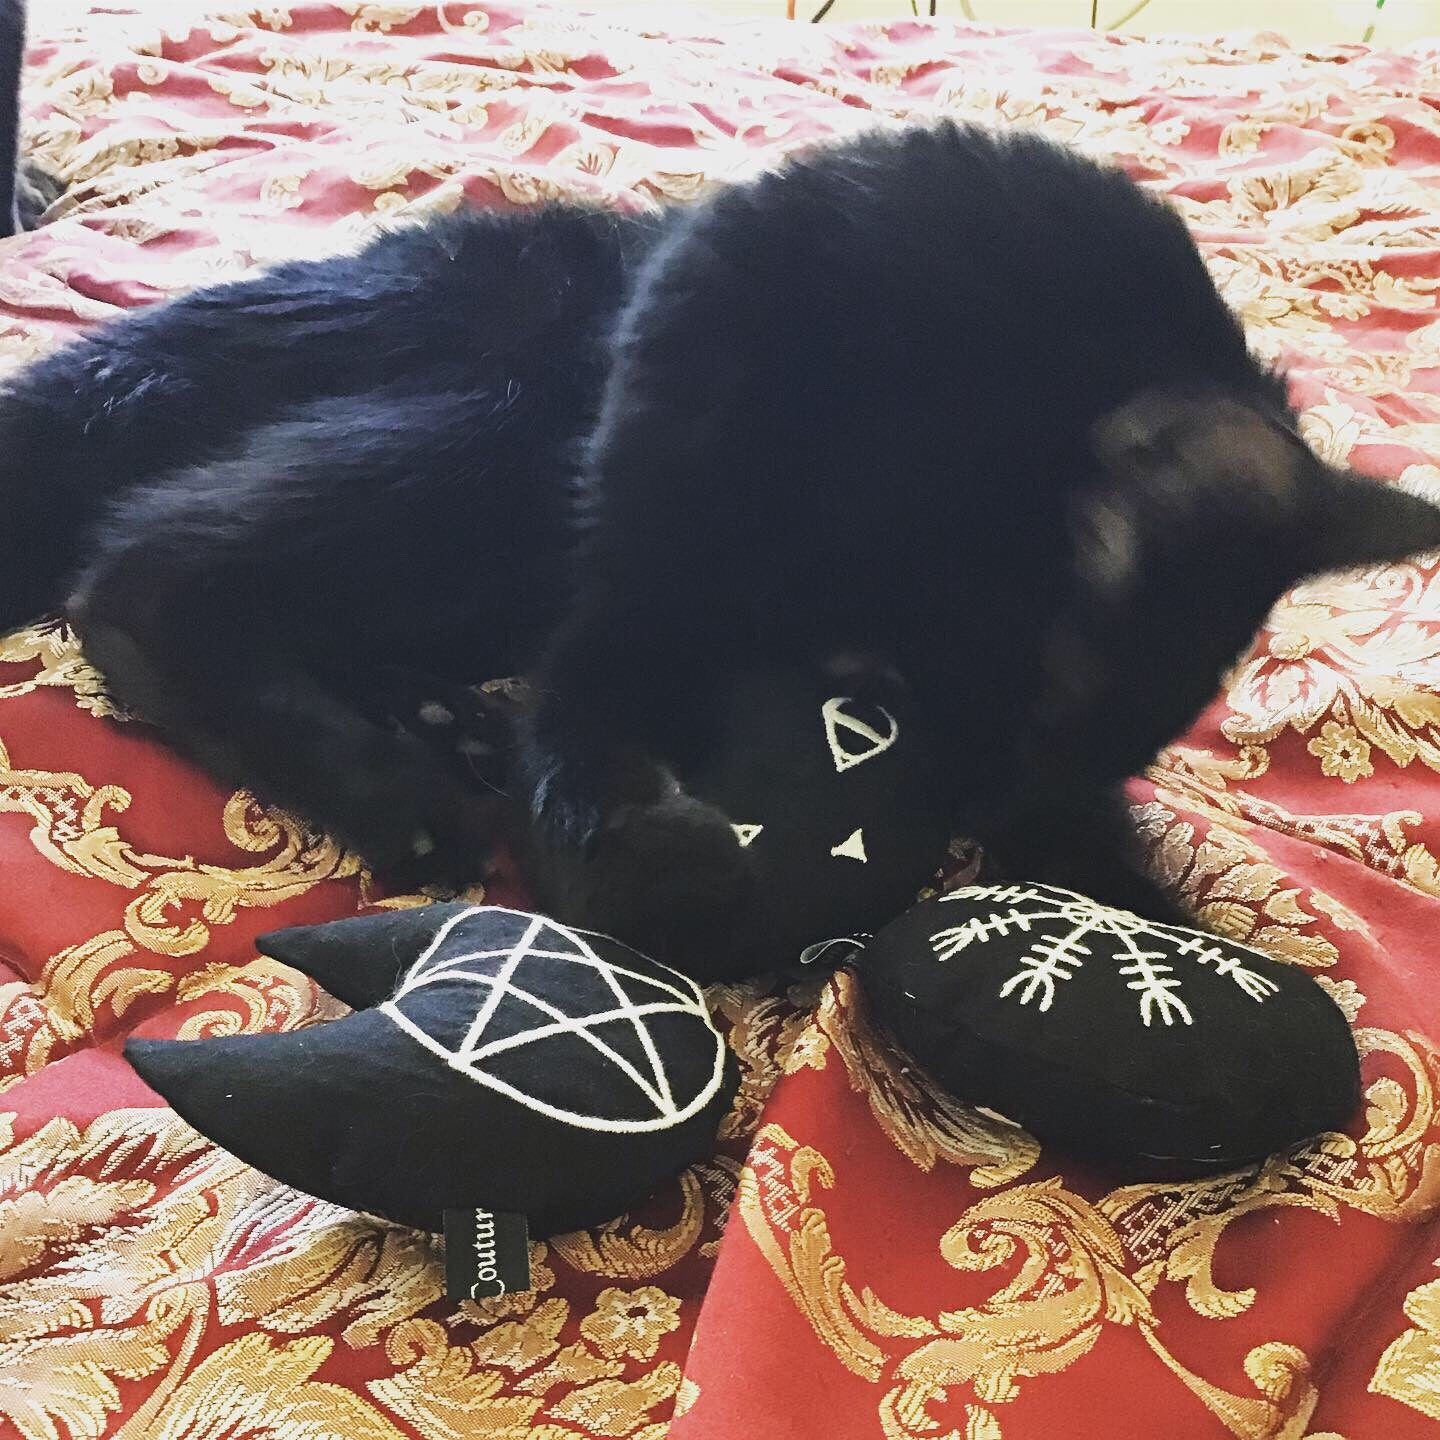 Cat Poppet with pentagram